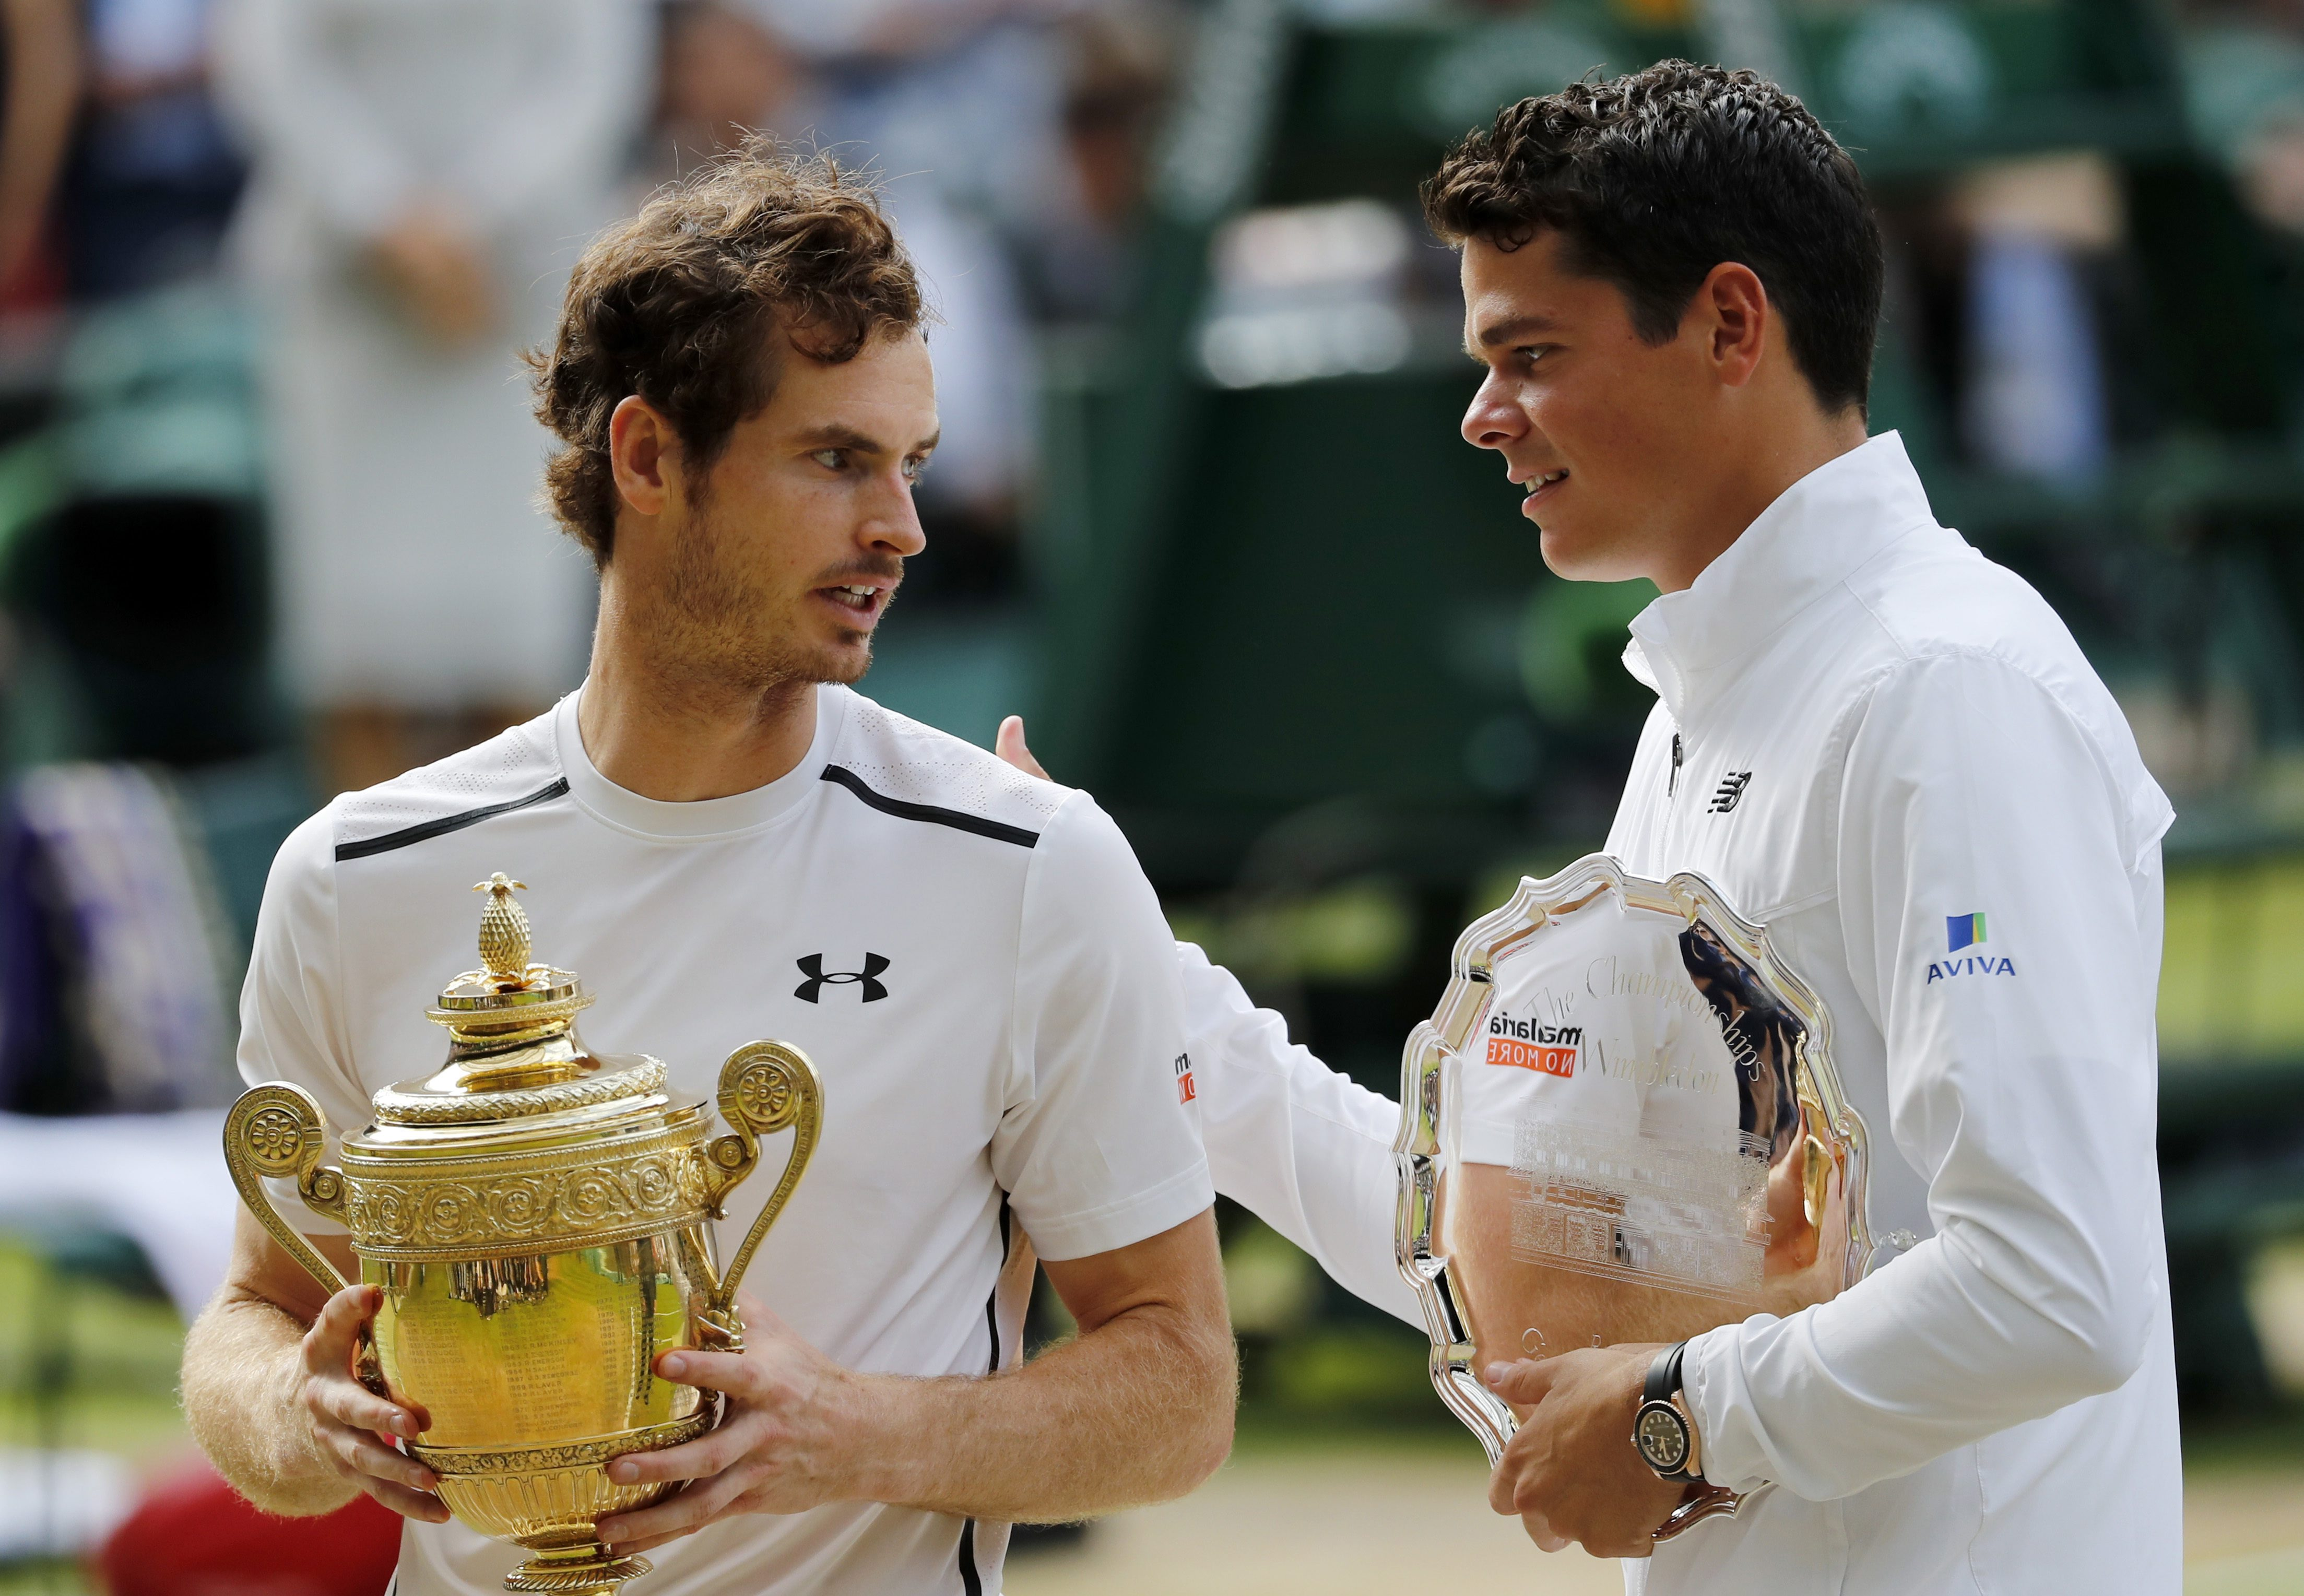 Andy Murray of Britain, left, holds up his trophy after beating Milos Raonic of Canada, right, in the men's singles final on day fourteen of the Wimbledon Tennis Championships in London, Sunday, July 10, 2016. (AP Photo/Ben Curtis)